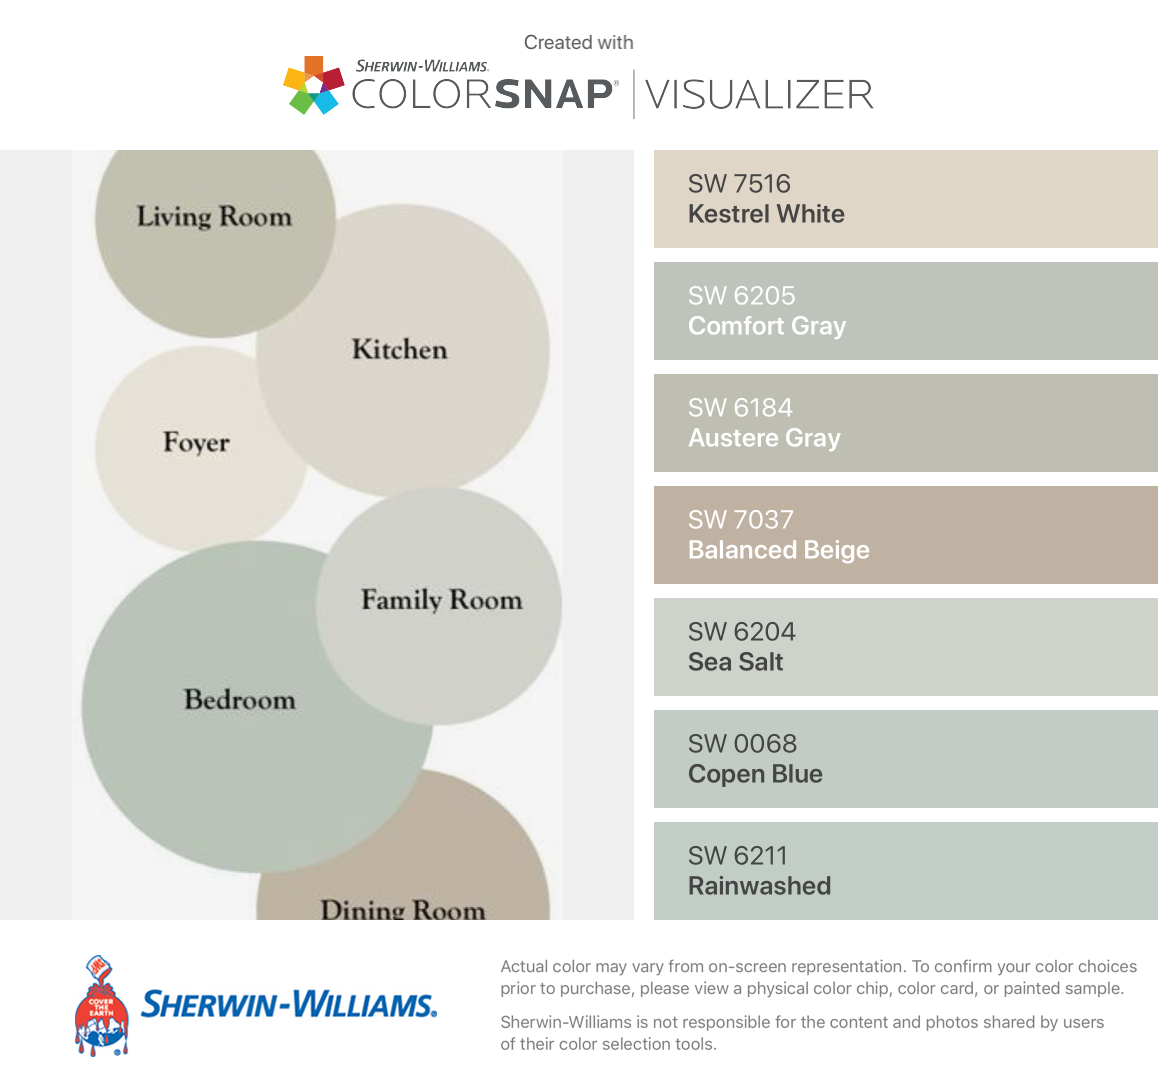 I Found These Colors With Colorsnap Visualizer For Iphone By Sherwin Williams Kestrel White Balanced Beige Balanced Beige Sherwin Williams Beige Color Scheme